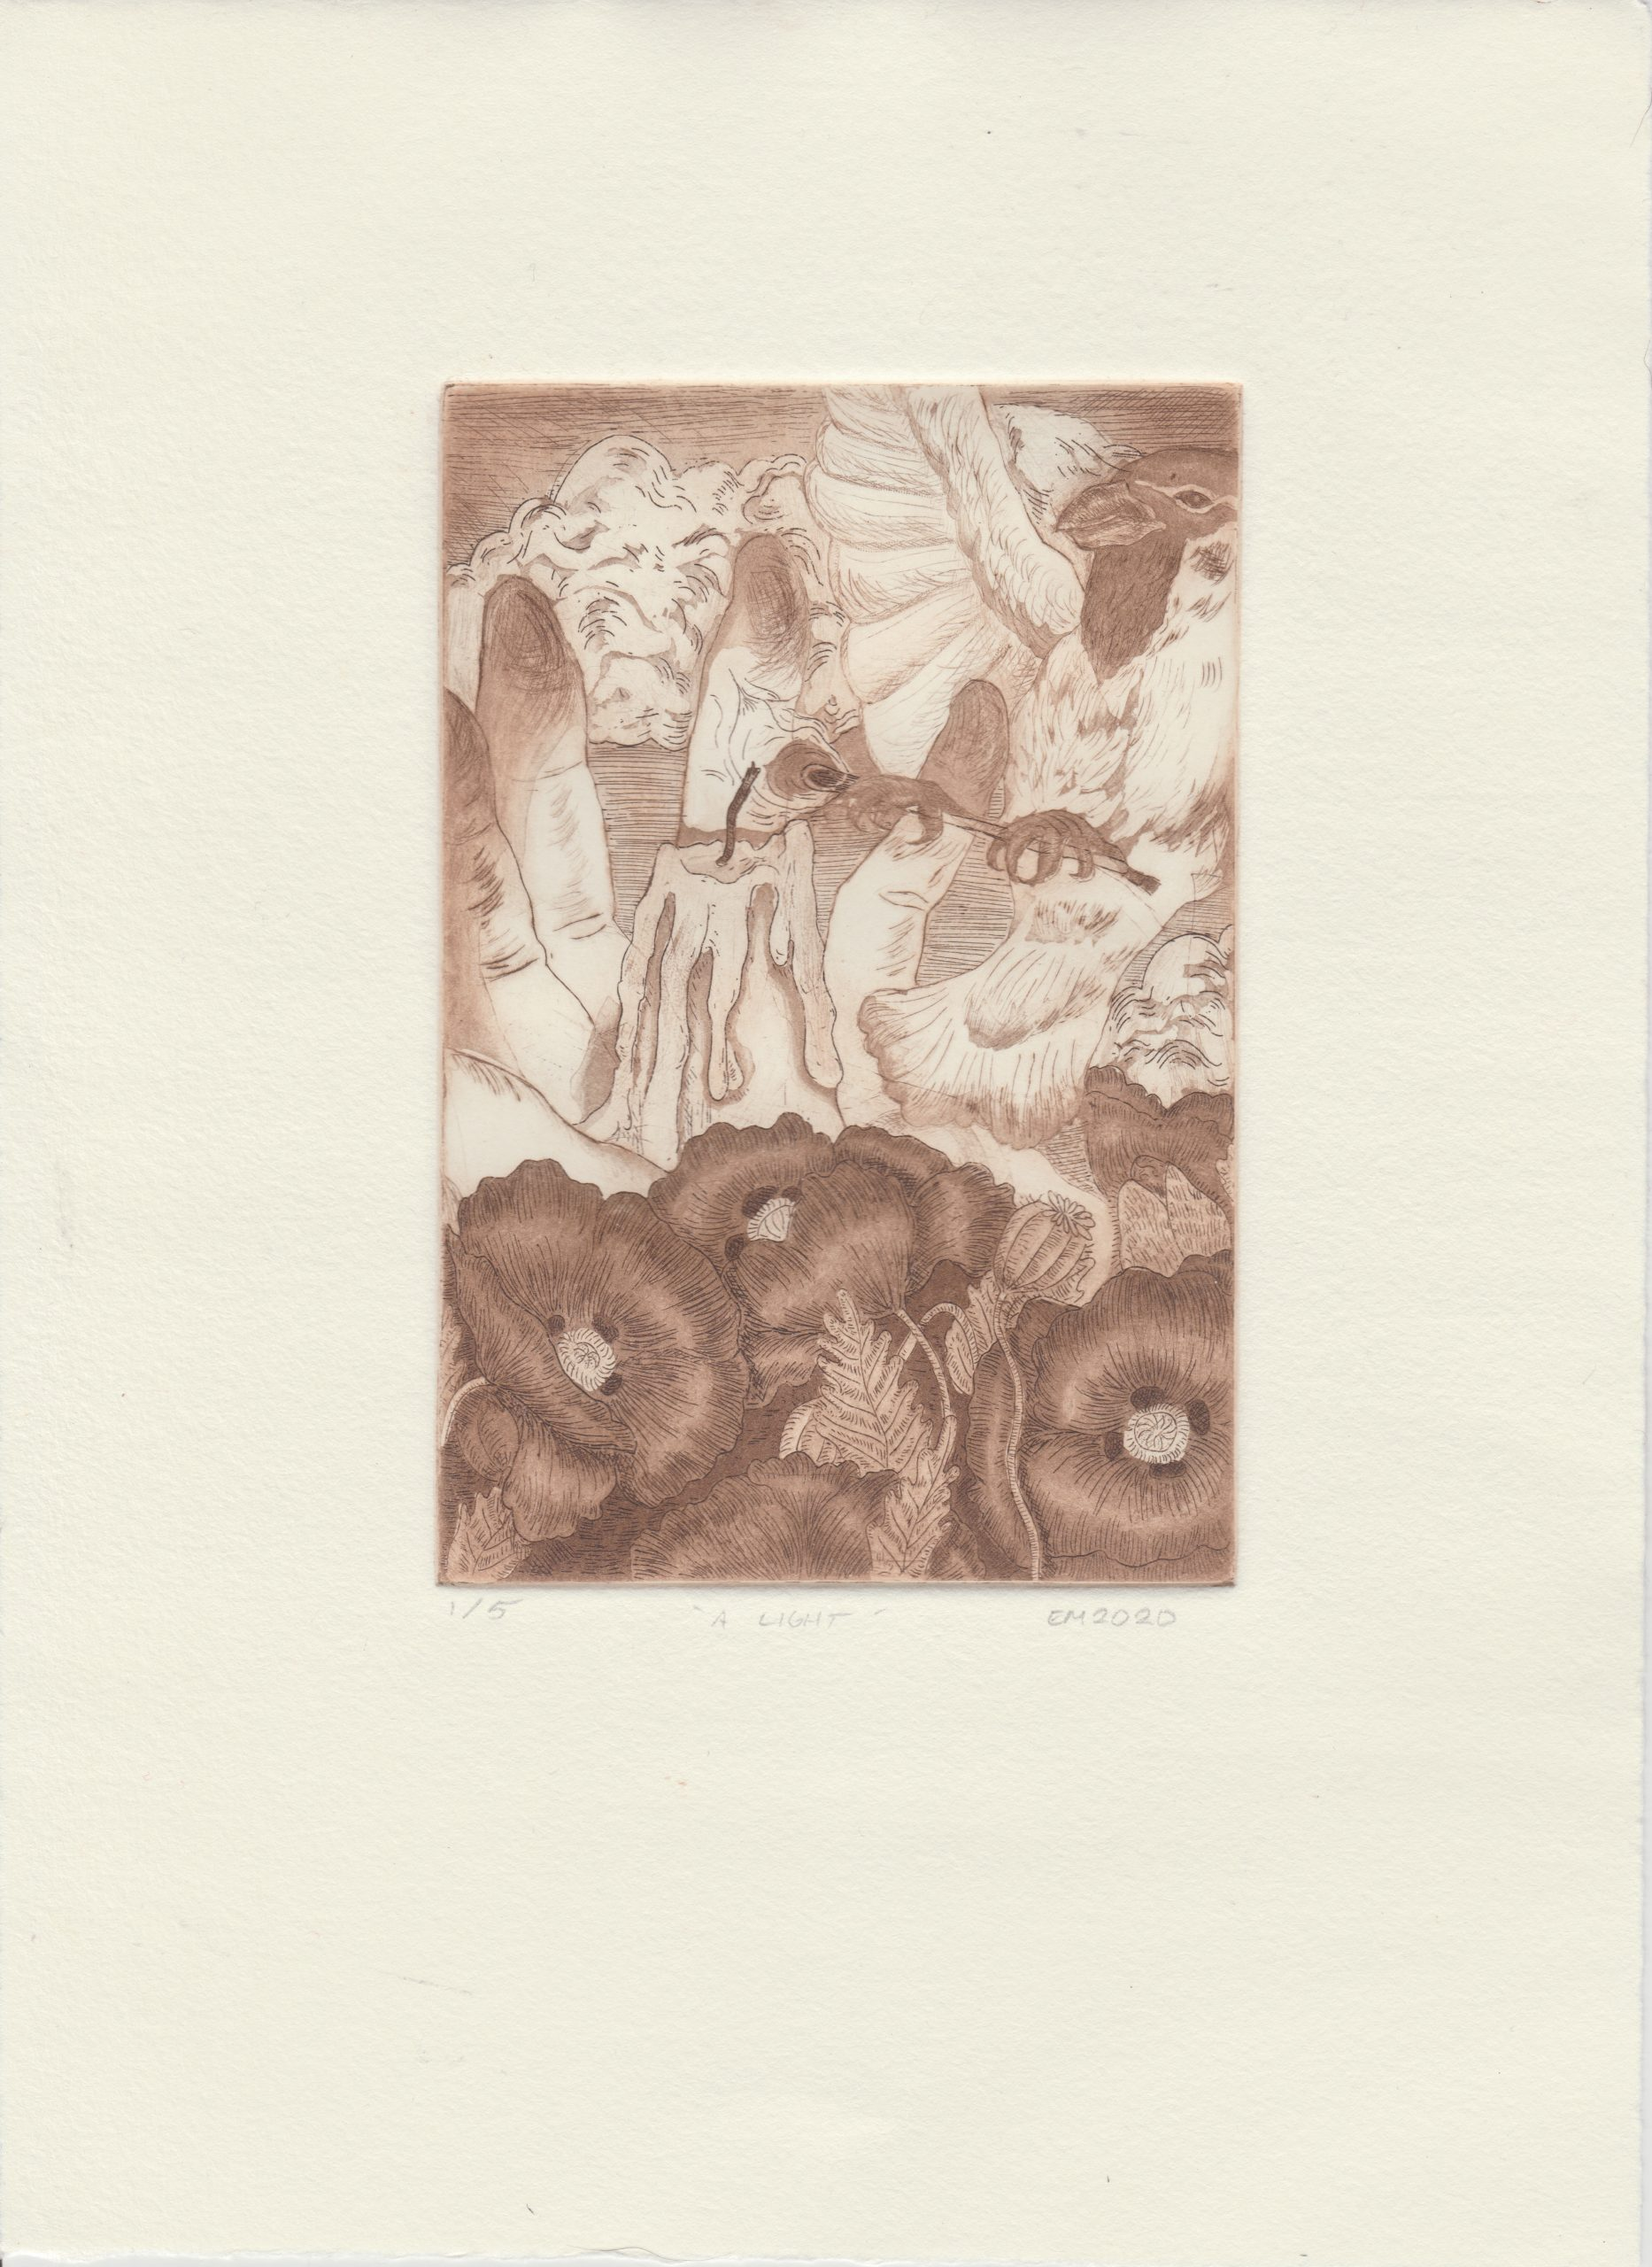 """Emerson Mitchell; A Light, 2020; Etching, Aquatint, and Drypoint on Hahnemuhle Copperplate paper; 11 x 8""""; Printmaking"""